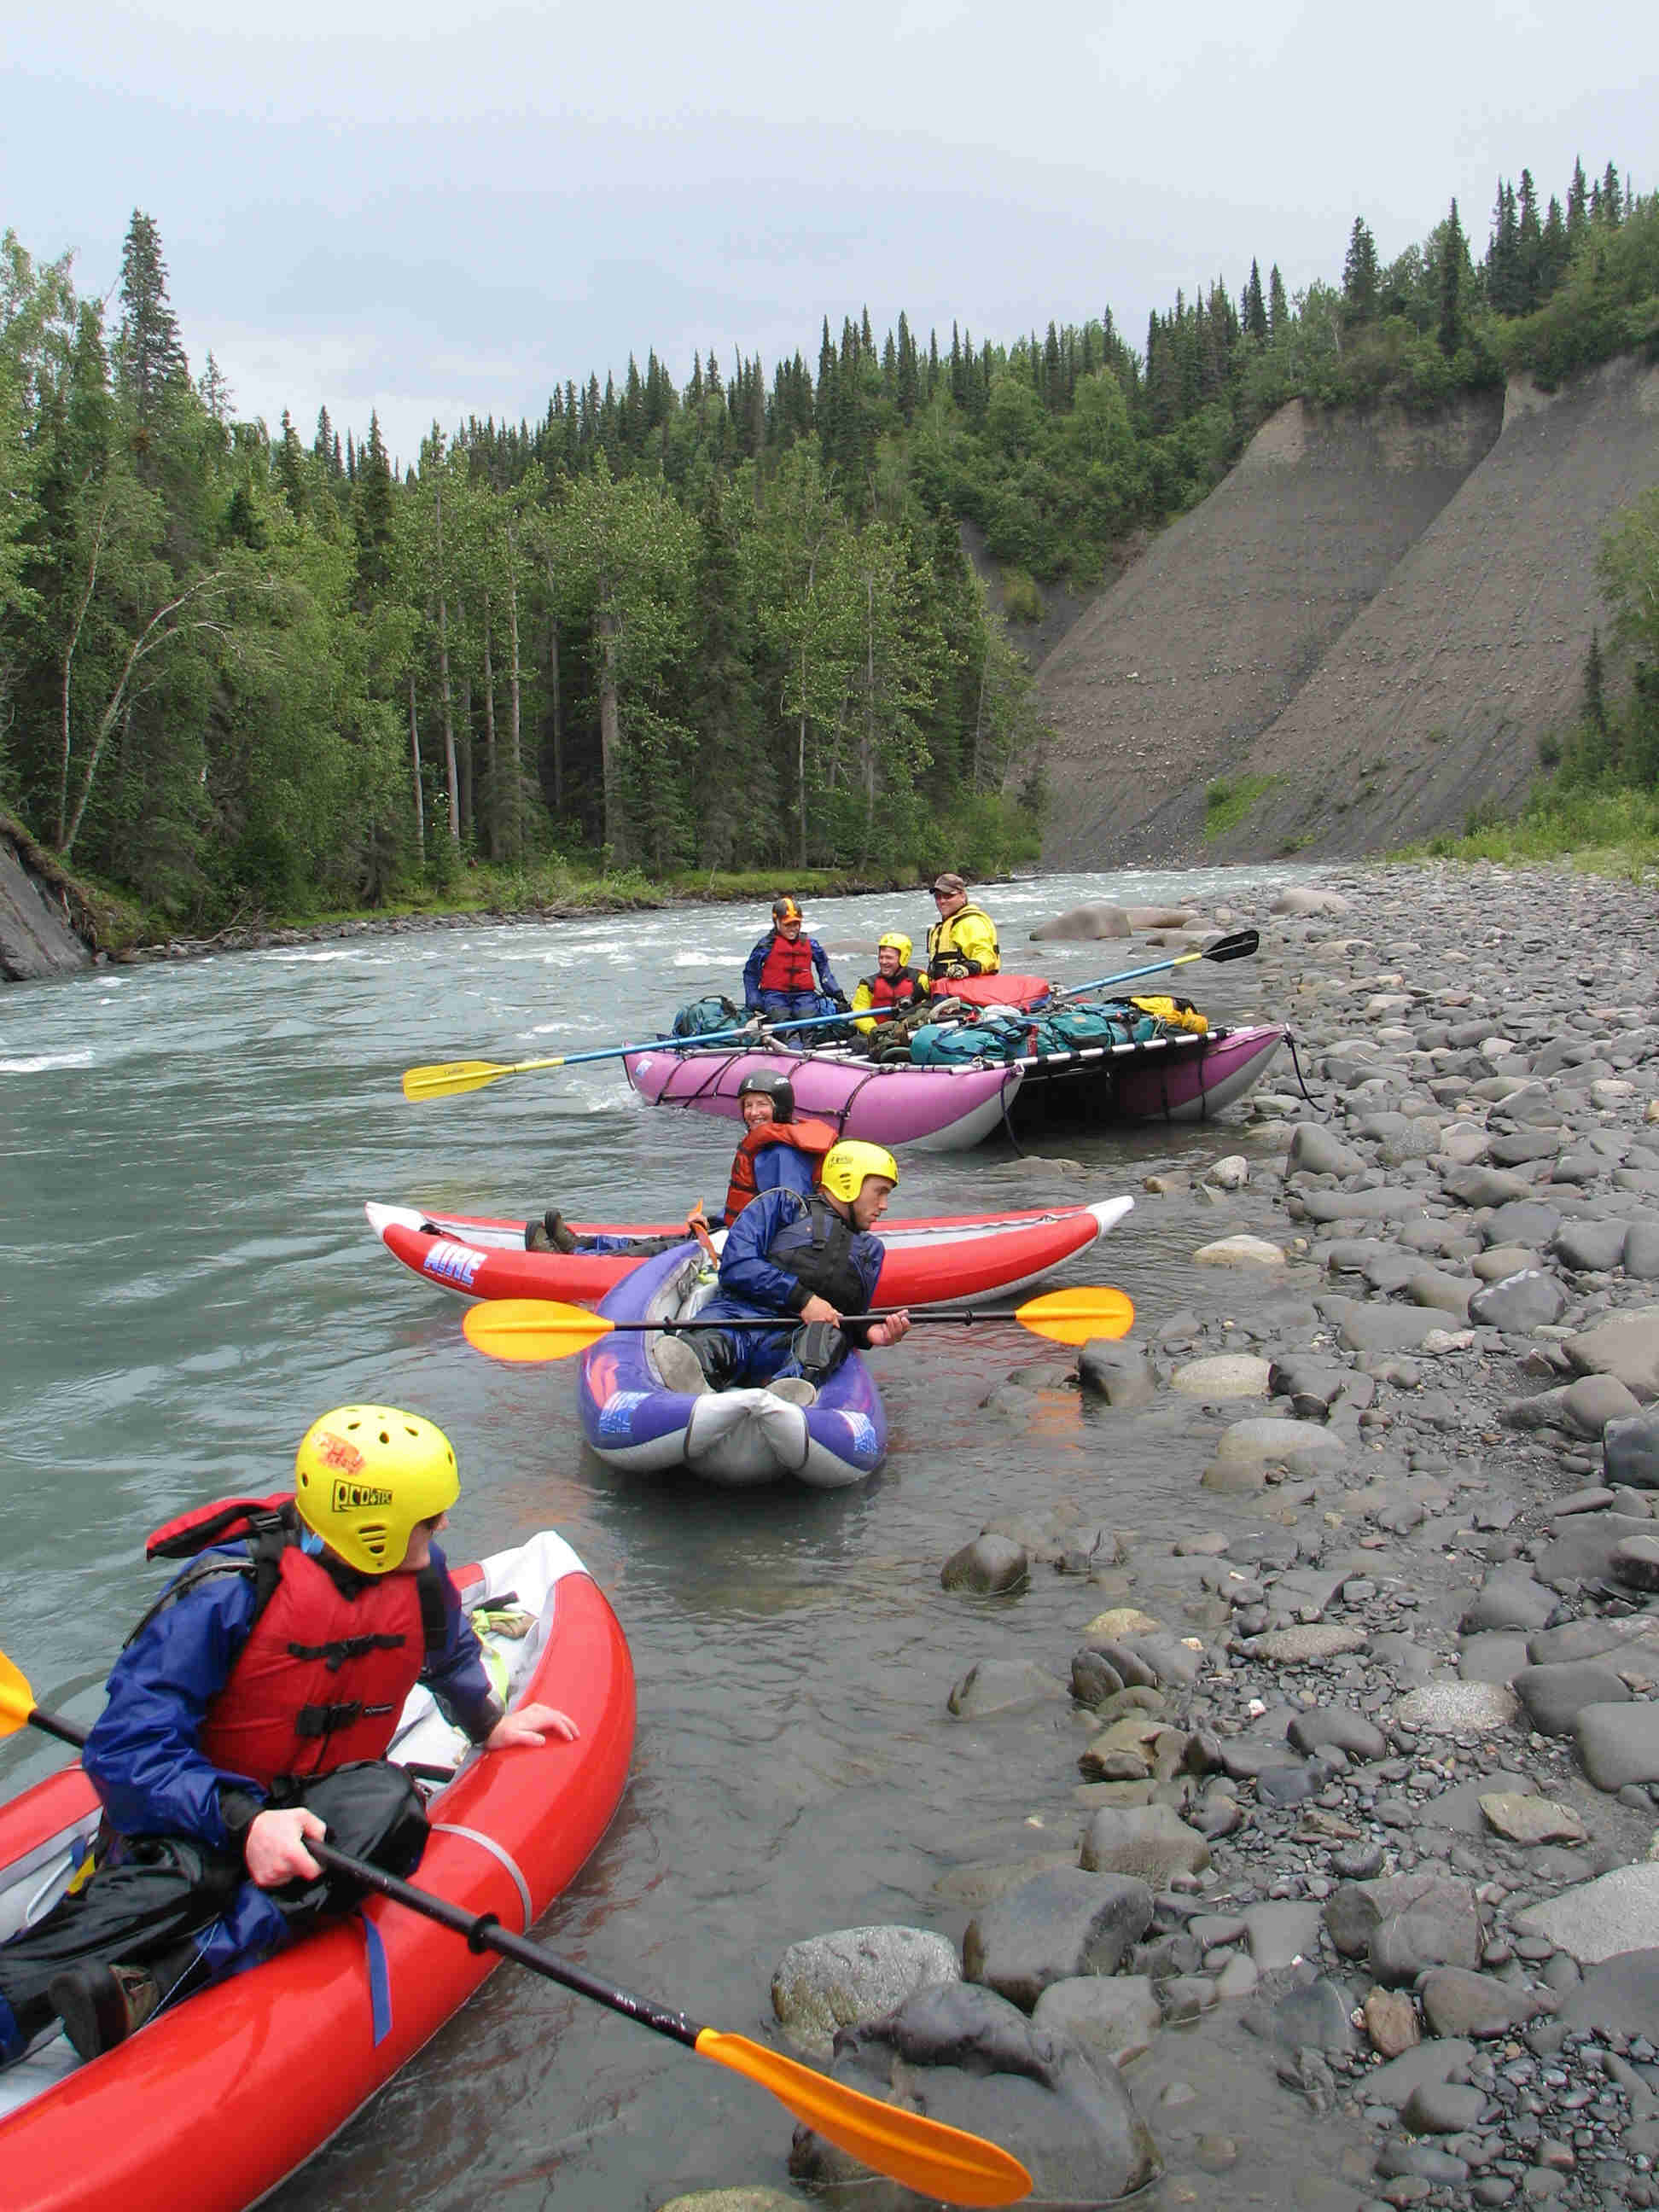 ALASKA RAFT CONNECTION'S FLOAT TRIP ADVANTAGE - WHY CHOOSE US? - ALASKA RAFT CONNECTION